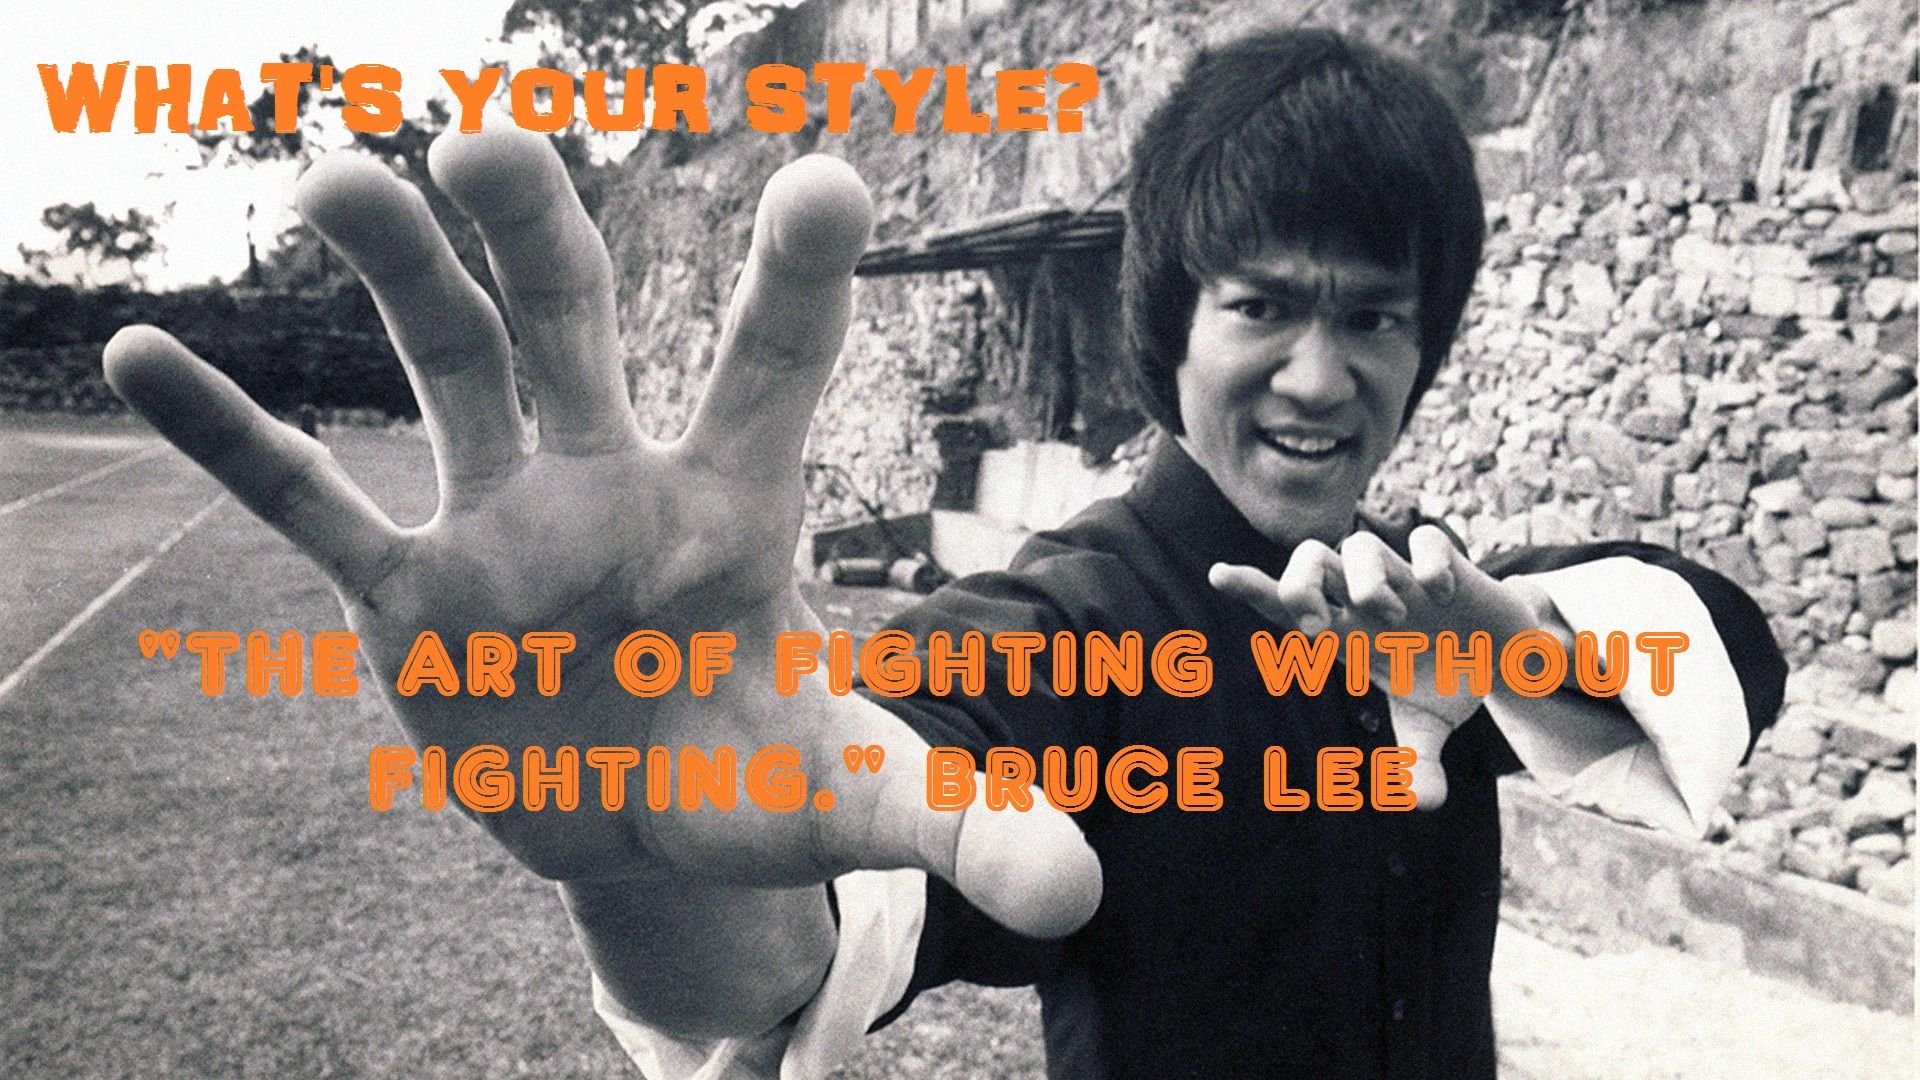 The Art Of Fighting Without Fighting Bruce Lee Bruce Lee Bruce Lee Quotes Martial Arts